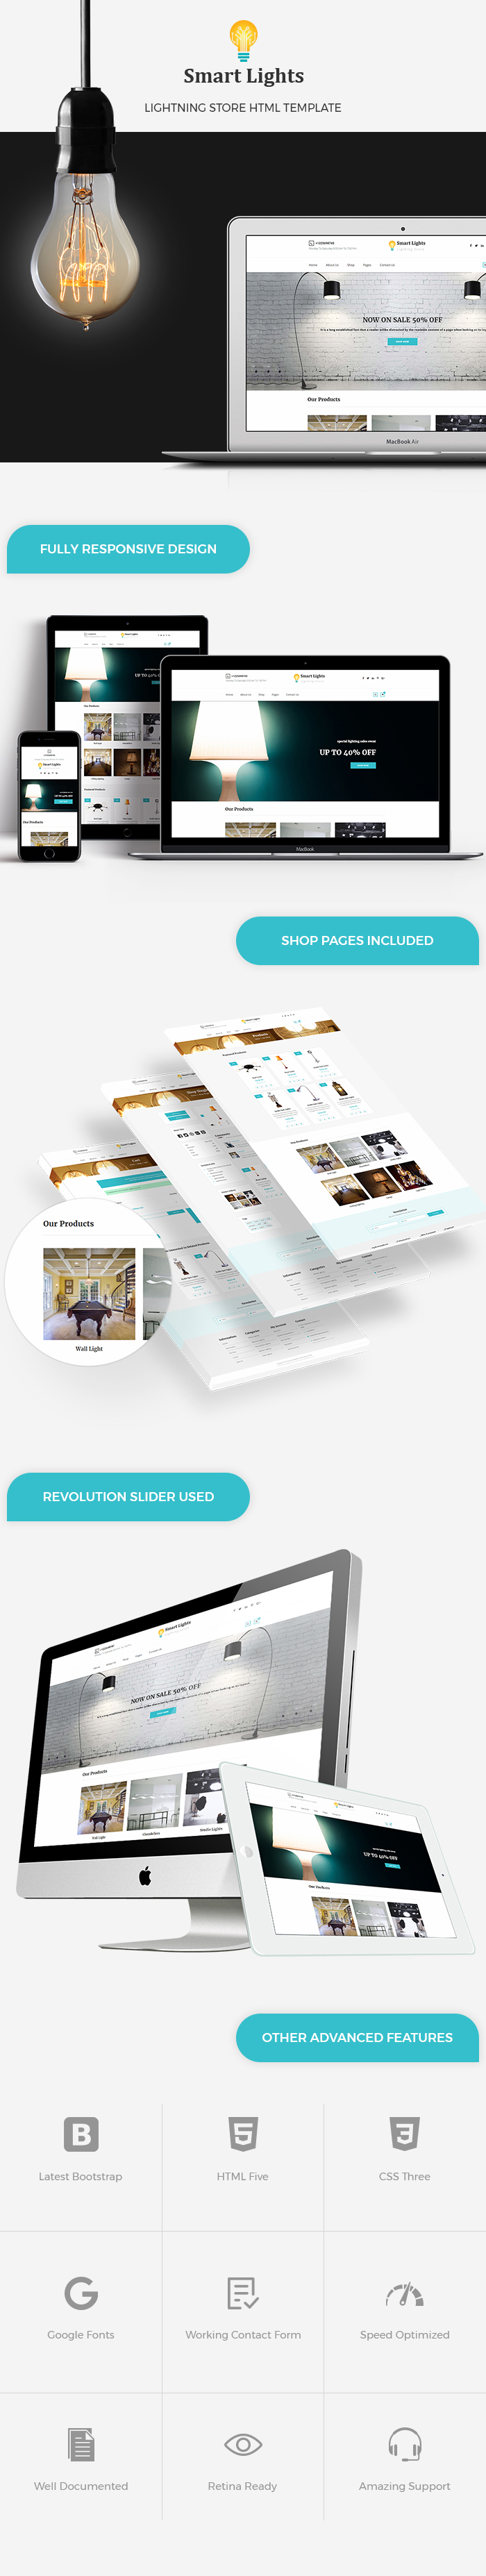 Lighting Store HTML Website Templates